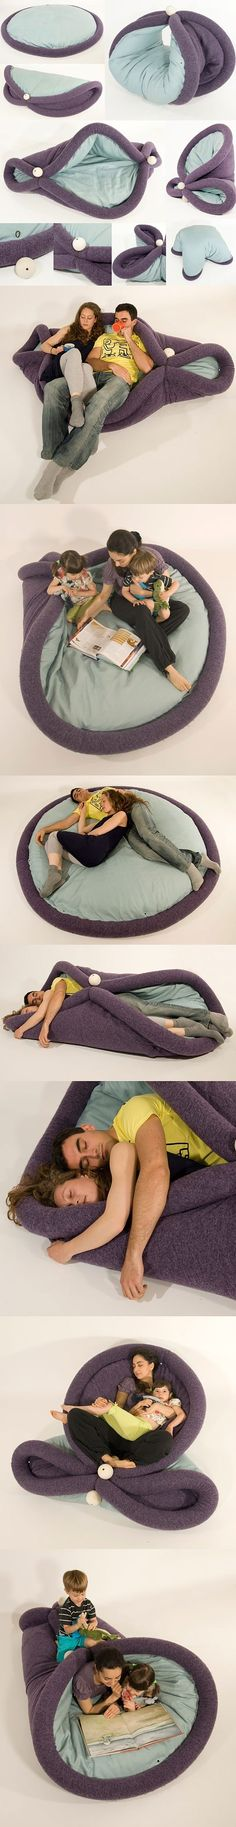 Transformable pad for lazy living... SO cool! I bet you could make this.